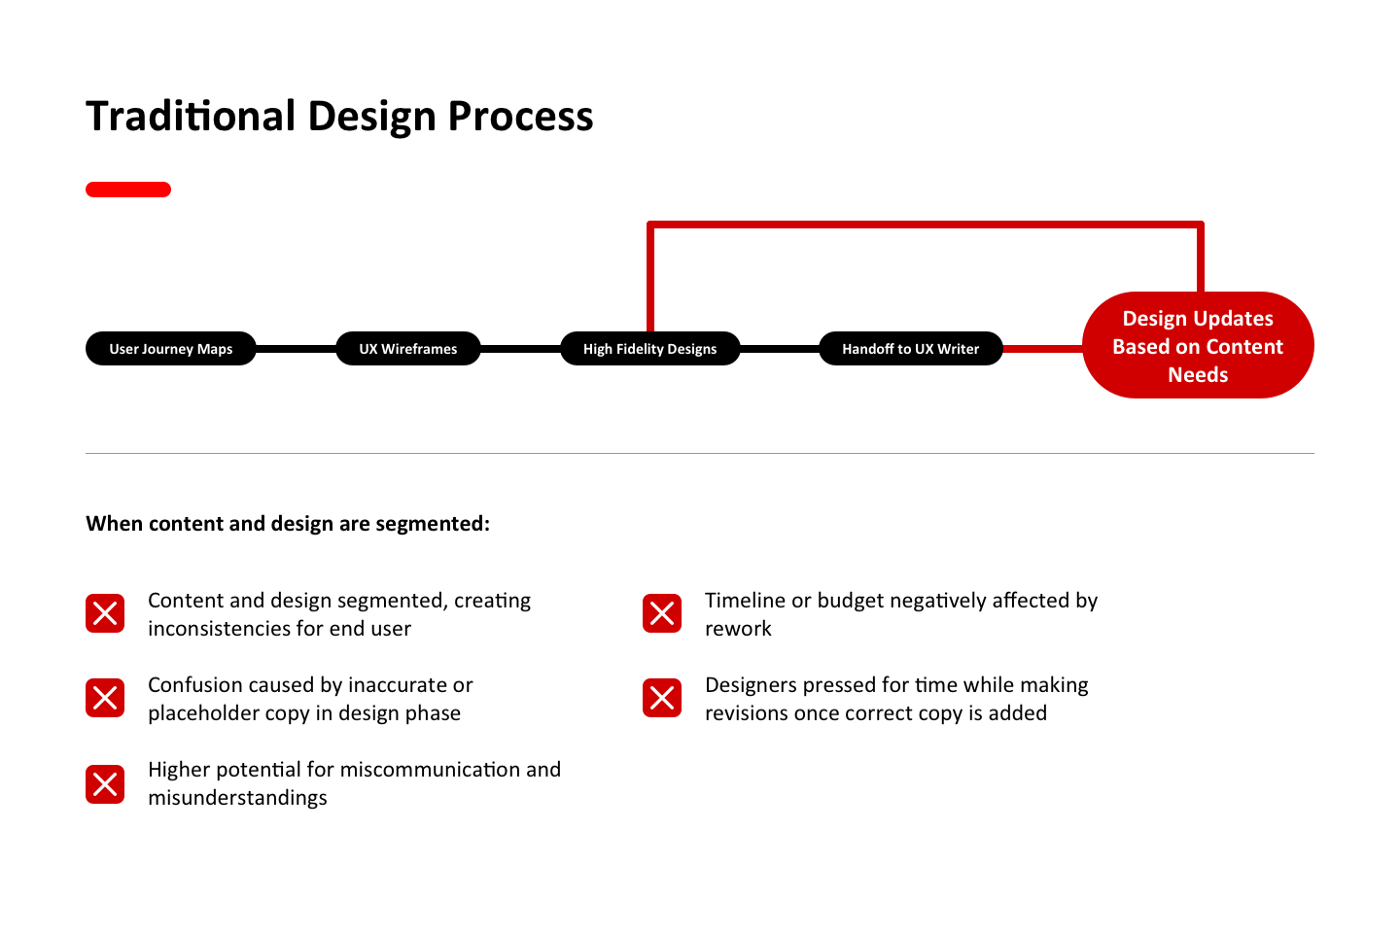 A traditional design process might have user journey maps, UX wireframes and high fidelity designs all done before a UX writer is involved. This segmentation creates inconsistencies, confusion and misunderstandings in the final product. It also means the designer needs to do a lot of rework to fit content needs, negatively affecting the timeline and budget.